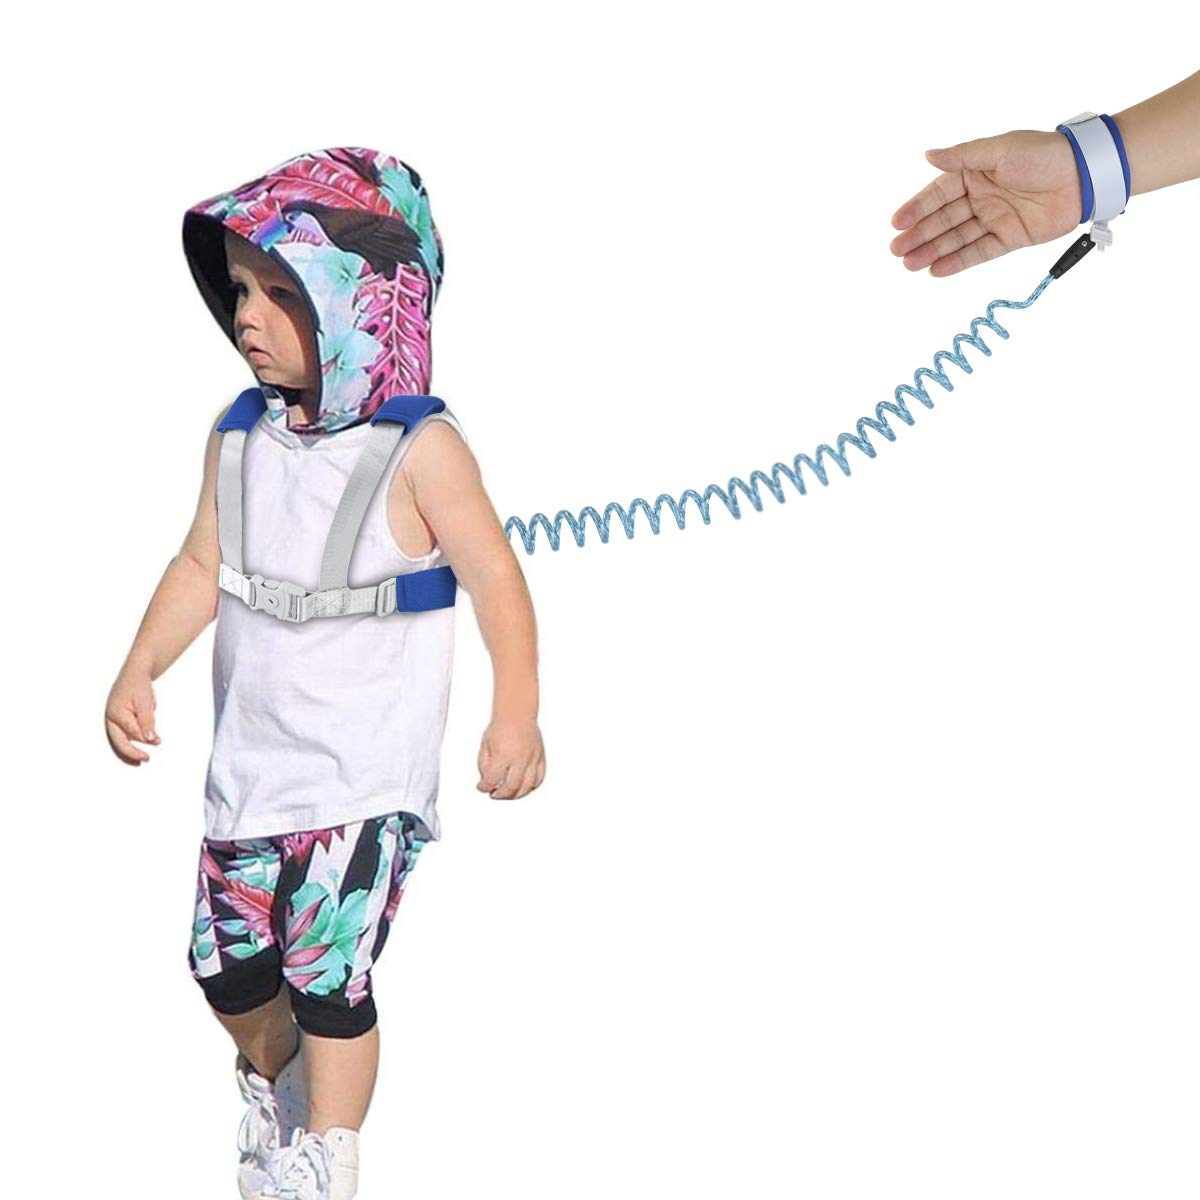 Reflective Wrist Link Pink 2-in-1 Kids Anti Lost Safety Belts and Toddler Wristband Kits Safety Anti-Lost Harness Leashes for Walking Shopping Outing Travel